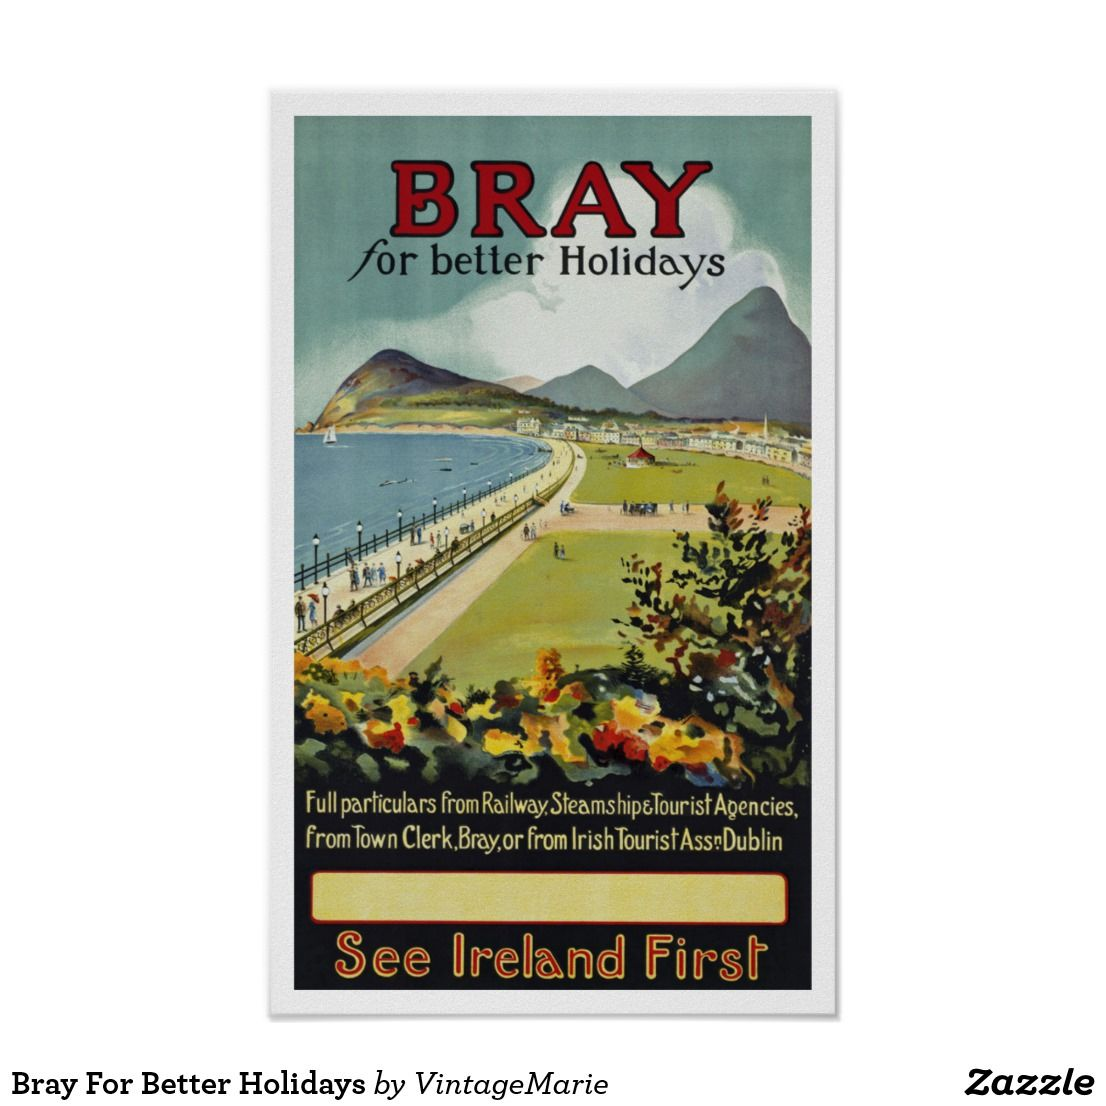 BRAY Ireland Dublin Irish Landscape Beaches Vintage Travel Poster FREE S//H in US